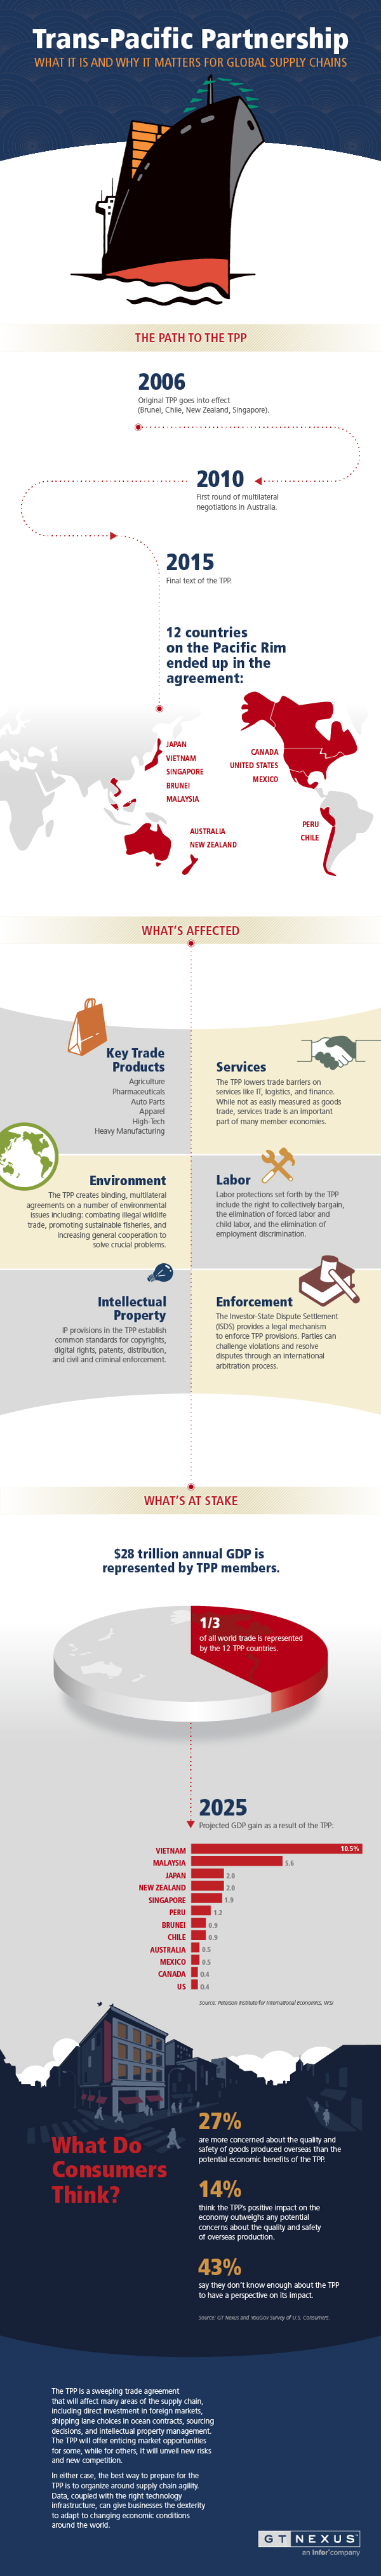 Trans-Pacific Partnership infographic